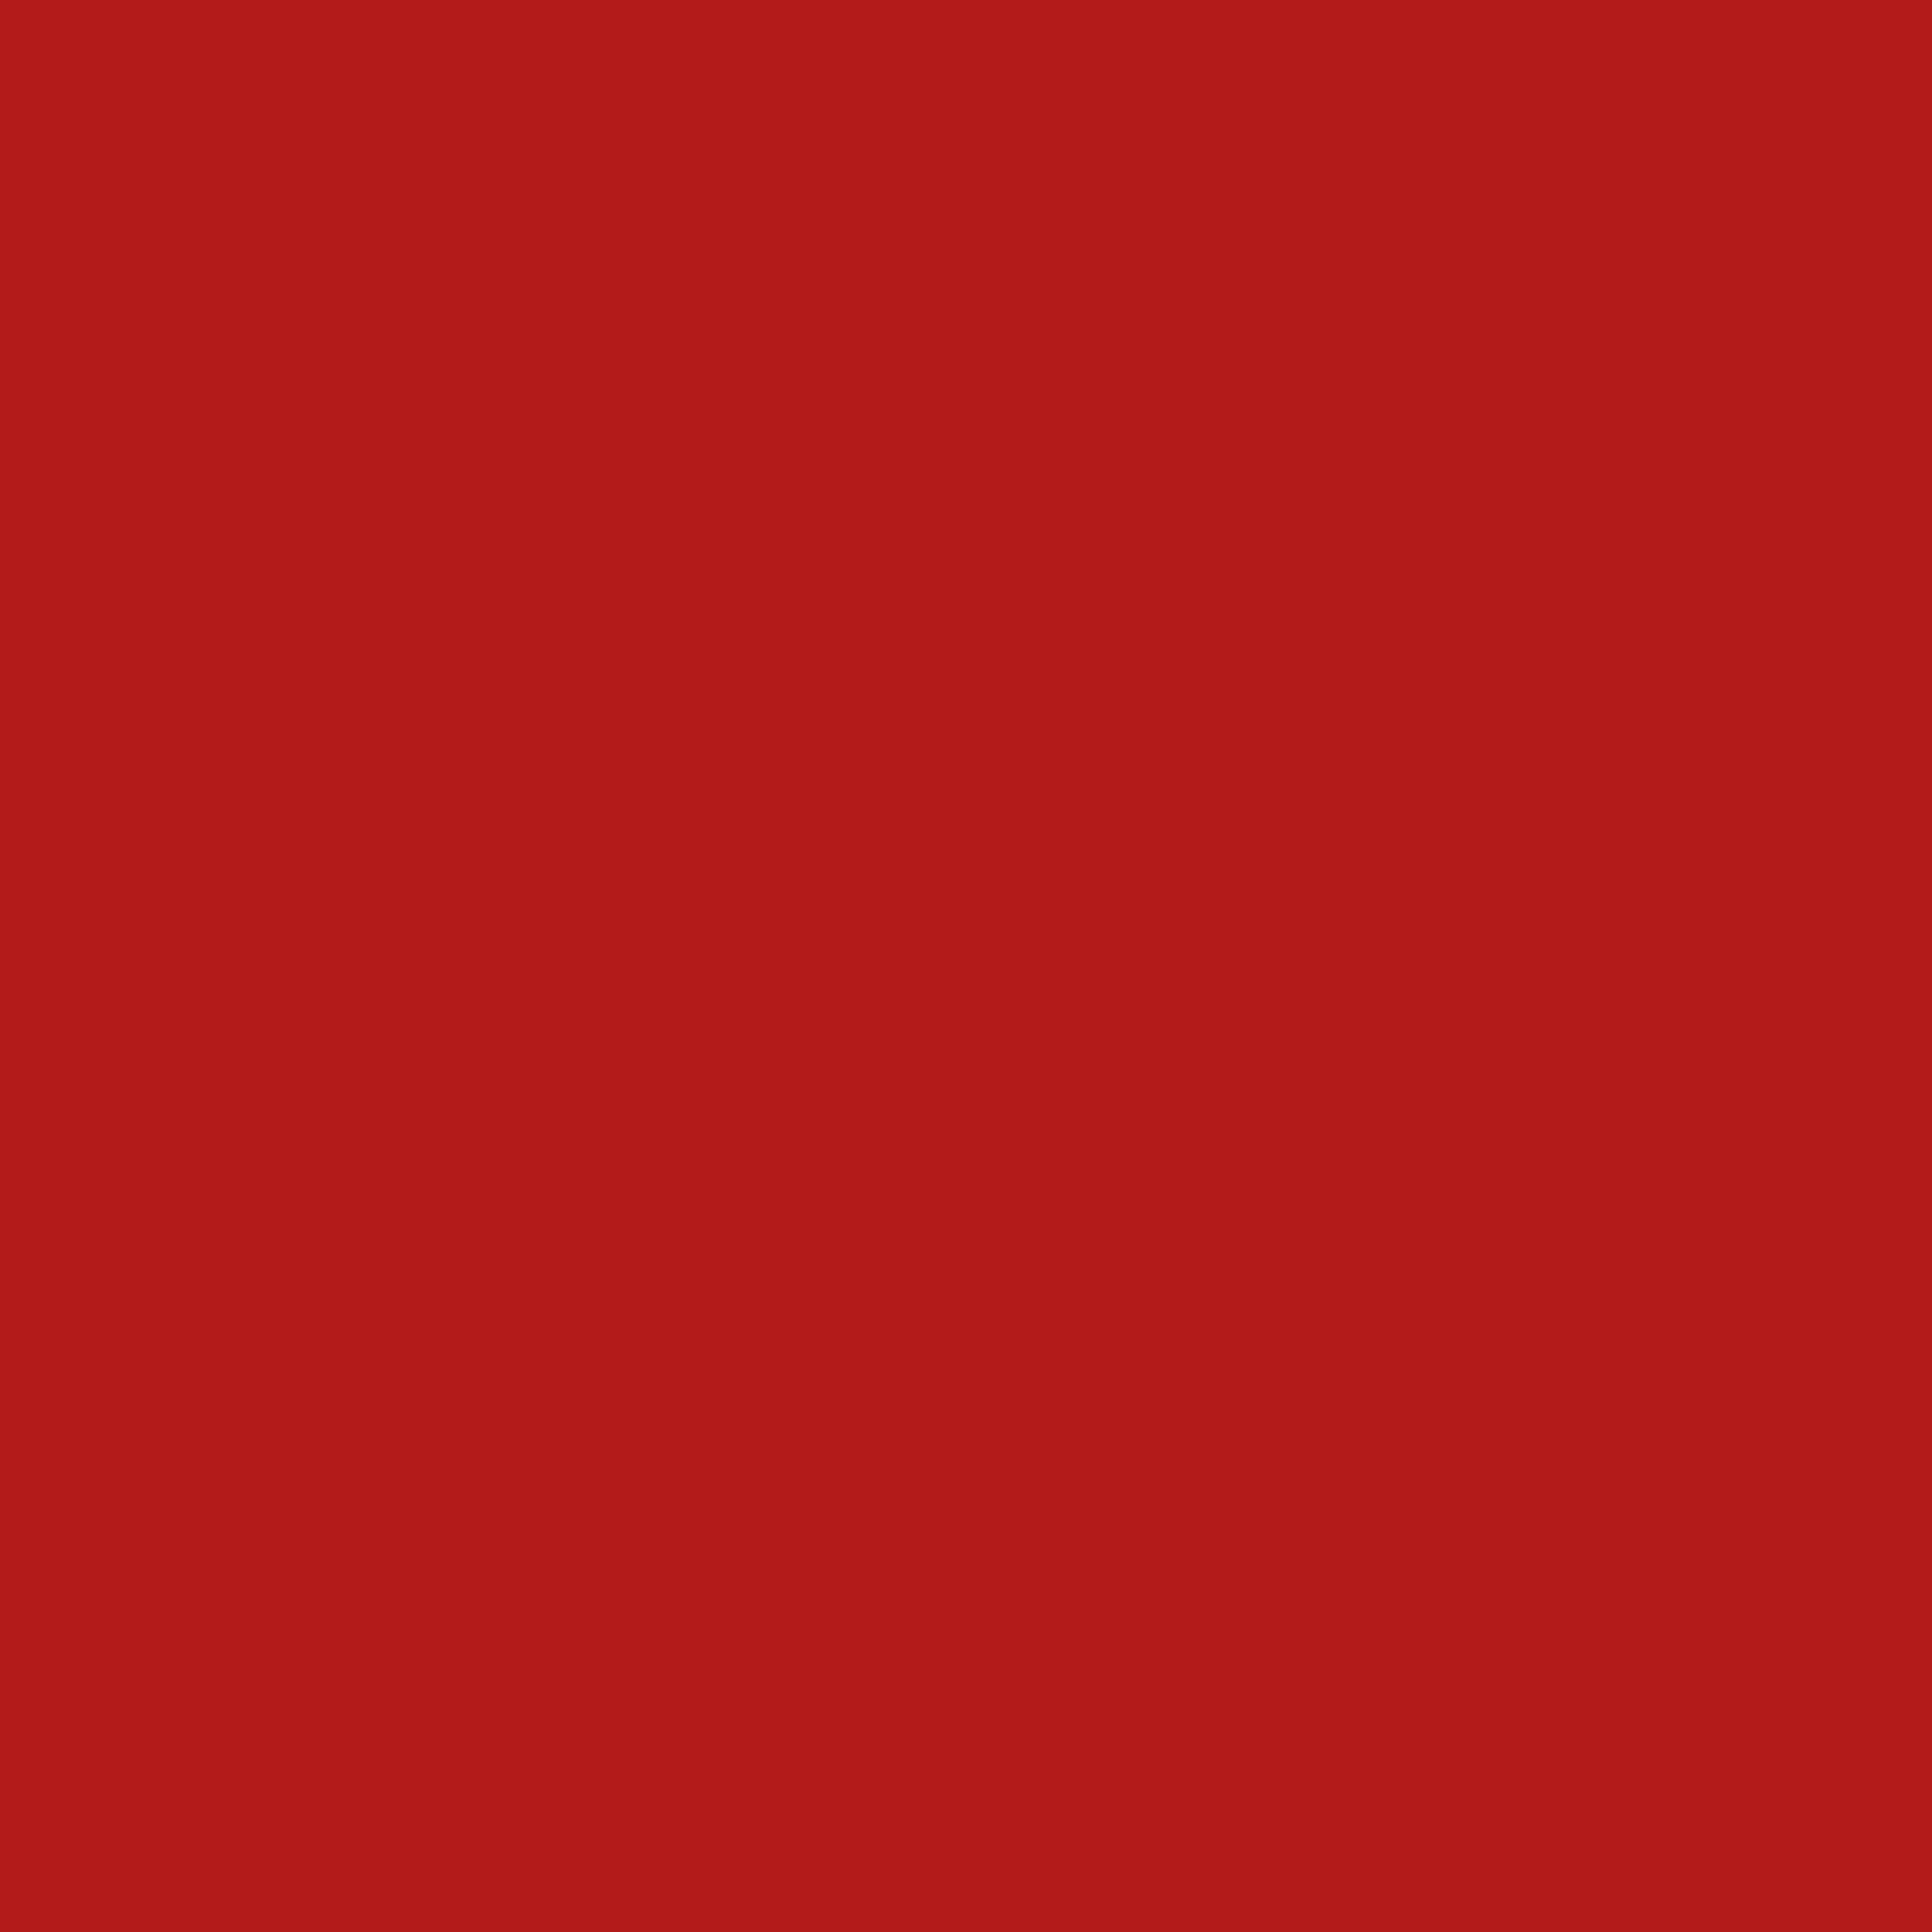 2732x2732 Carnelian Solid Color Background